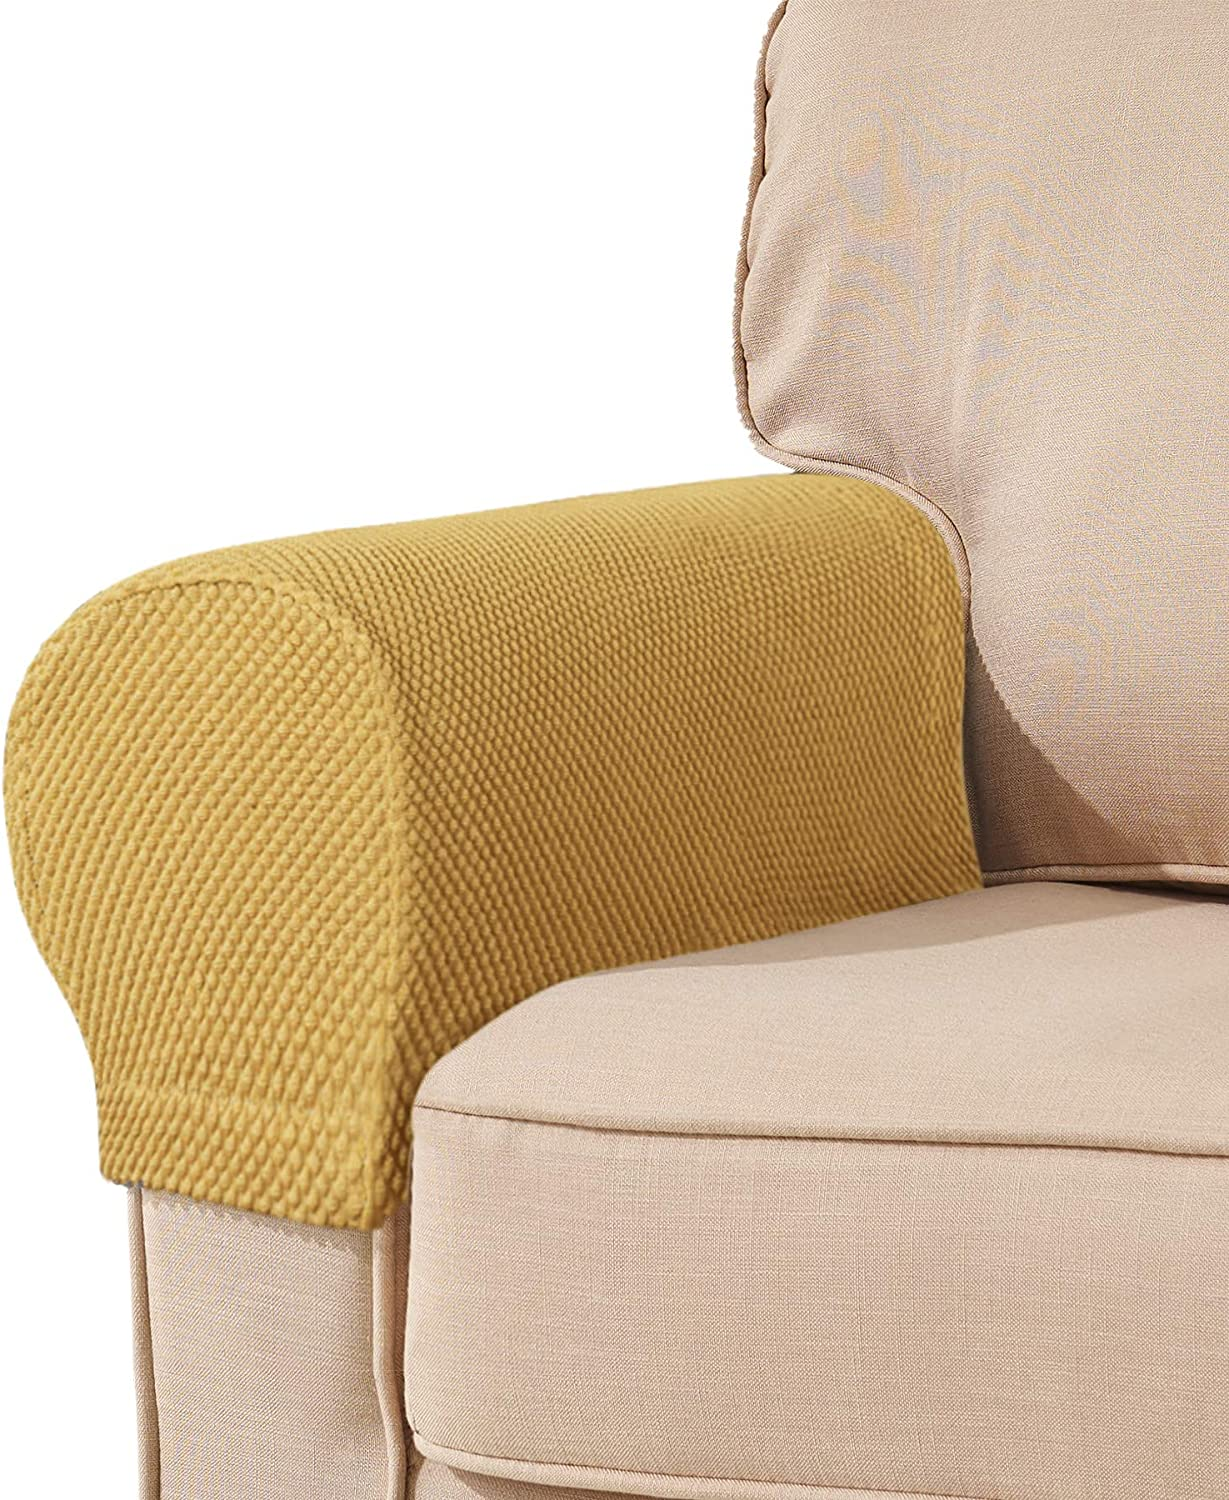 subrtex Spandex Stretch Fabric Armrest Covers Anti-Slip Furniture Protector Armchair Slipcovers for Recliner Sofa Set of 2 (Beige)